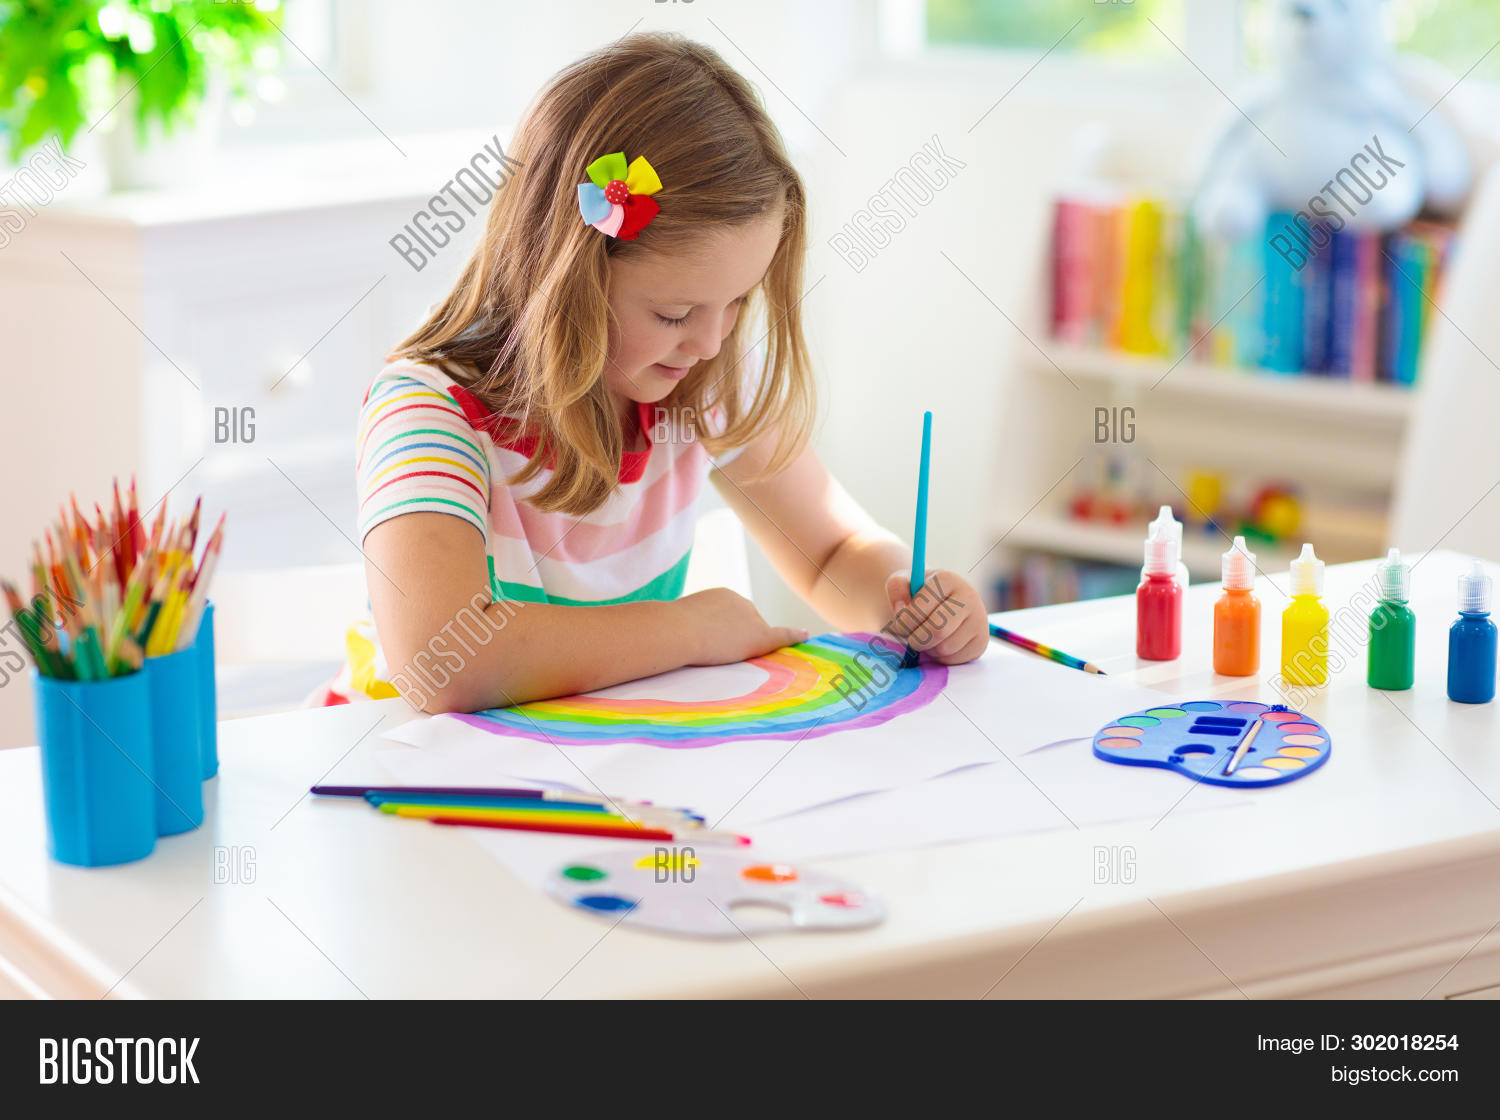 art,artist,artistic,bedroom,book,boy,care,child,childhood,color,craft,creative,creativity,day,daycare,desk,draw,drawing,education,face,fingers,fun,funny,girl,hand,happy,homework,joy,kid,kindergarten,learn,little,messy,paint,painter,painting,pencil,picture,play,playing,preschool,rainbow,room,school,study,vibrant,window,young